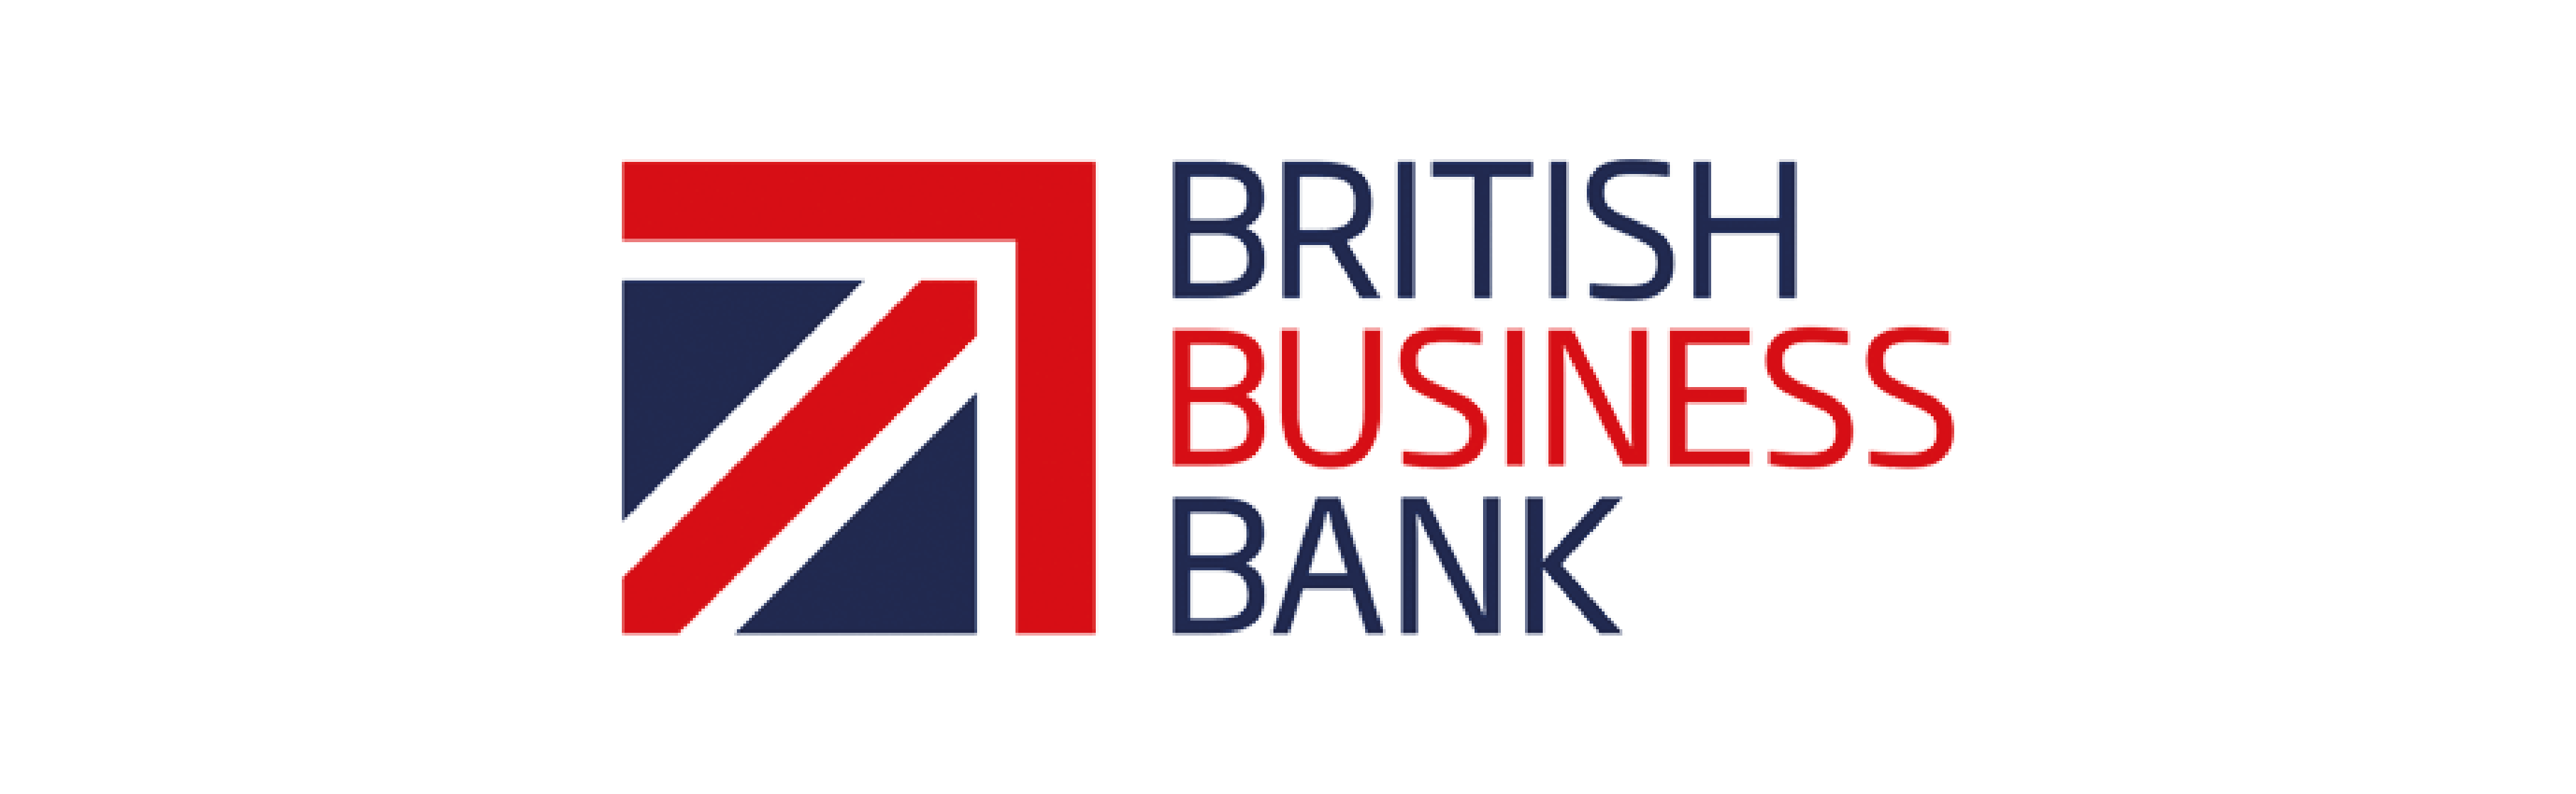 The British Business Bank